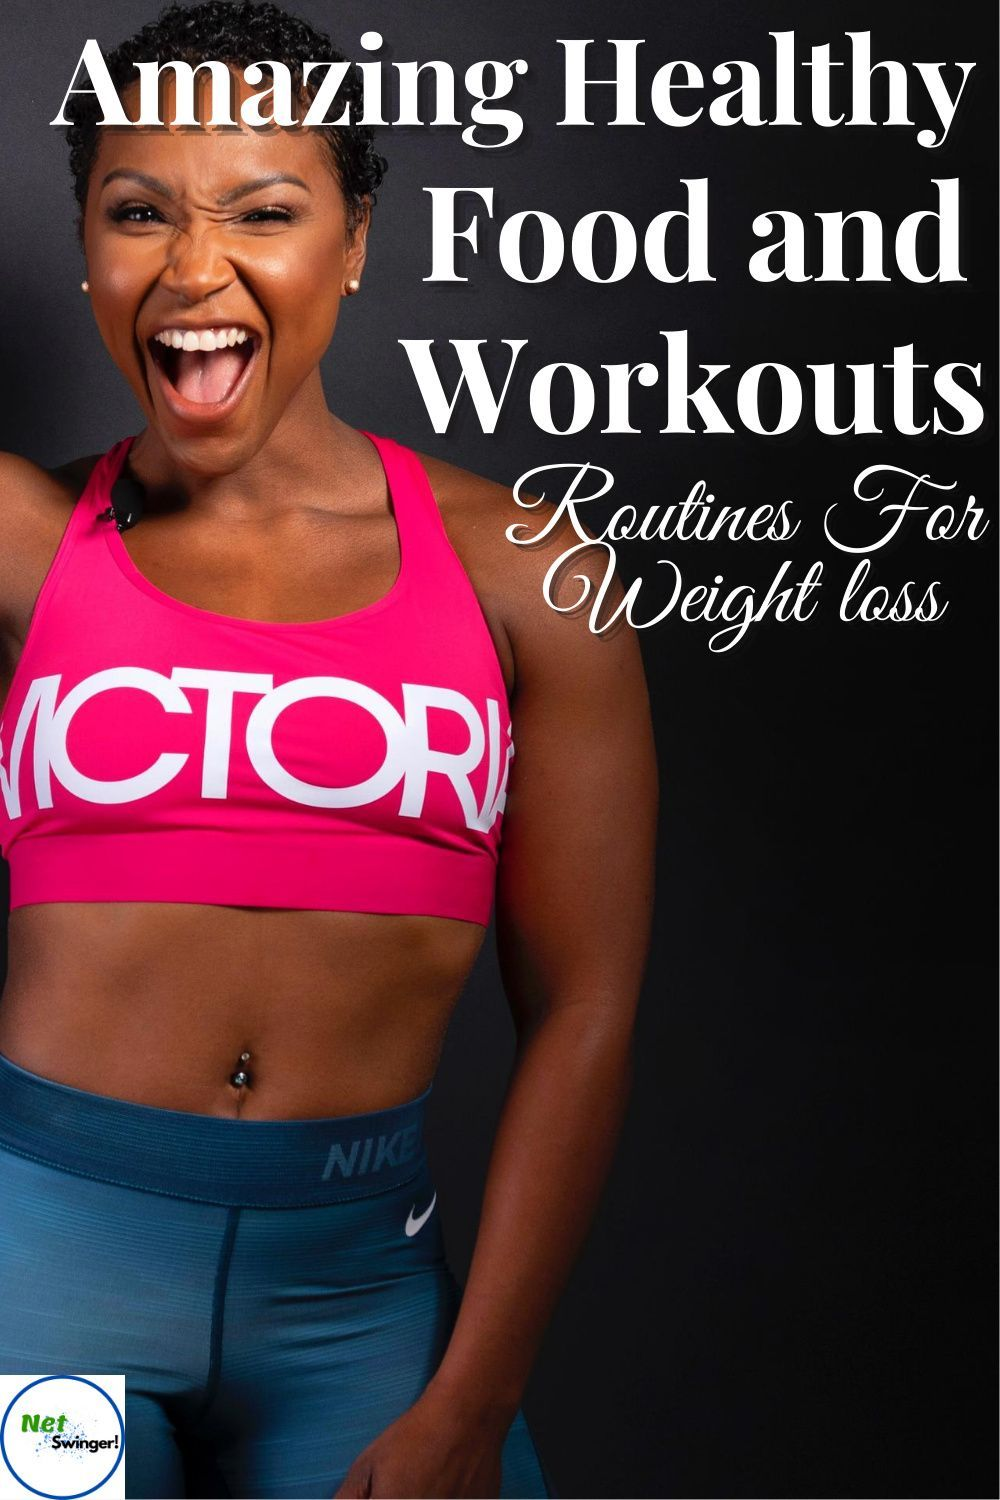 We have realized that healthy food goes with exercise in order to lose weight or to stay healthy. It is a good idea to live a healthy lifestyle.Healthy eating and exercises will help you to maintain your healthy weight and lower the risks of high cholesterol, high blood pressure, and developing cardiovascular disease and some cancers.#workoutathome #workoutexercises #bestworkouts #healthyrecipse #healthylife